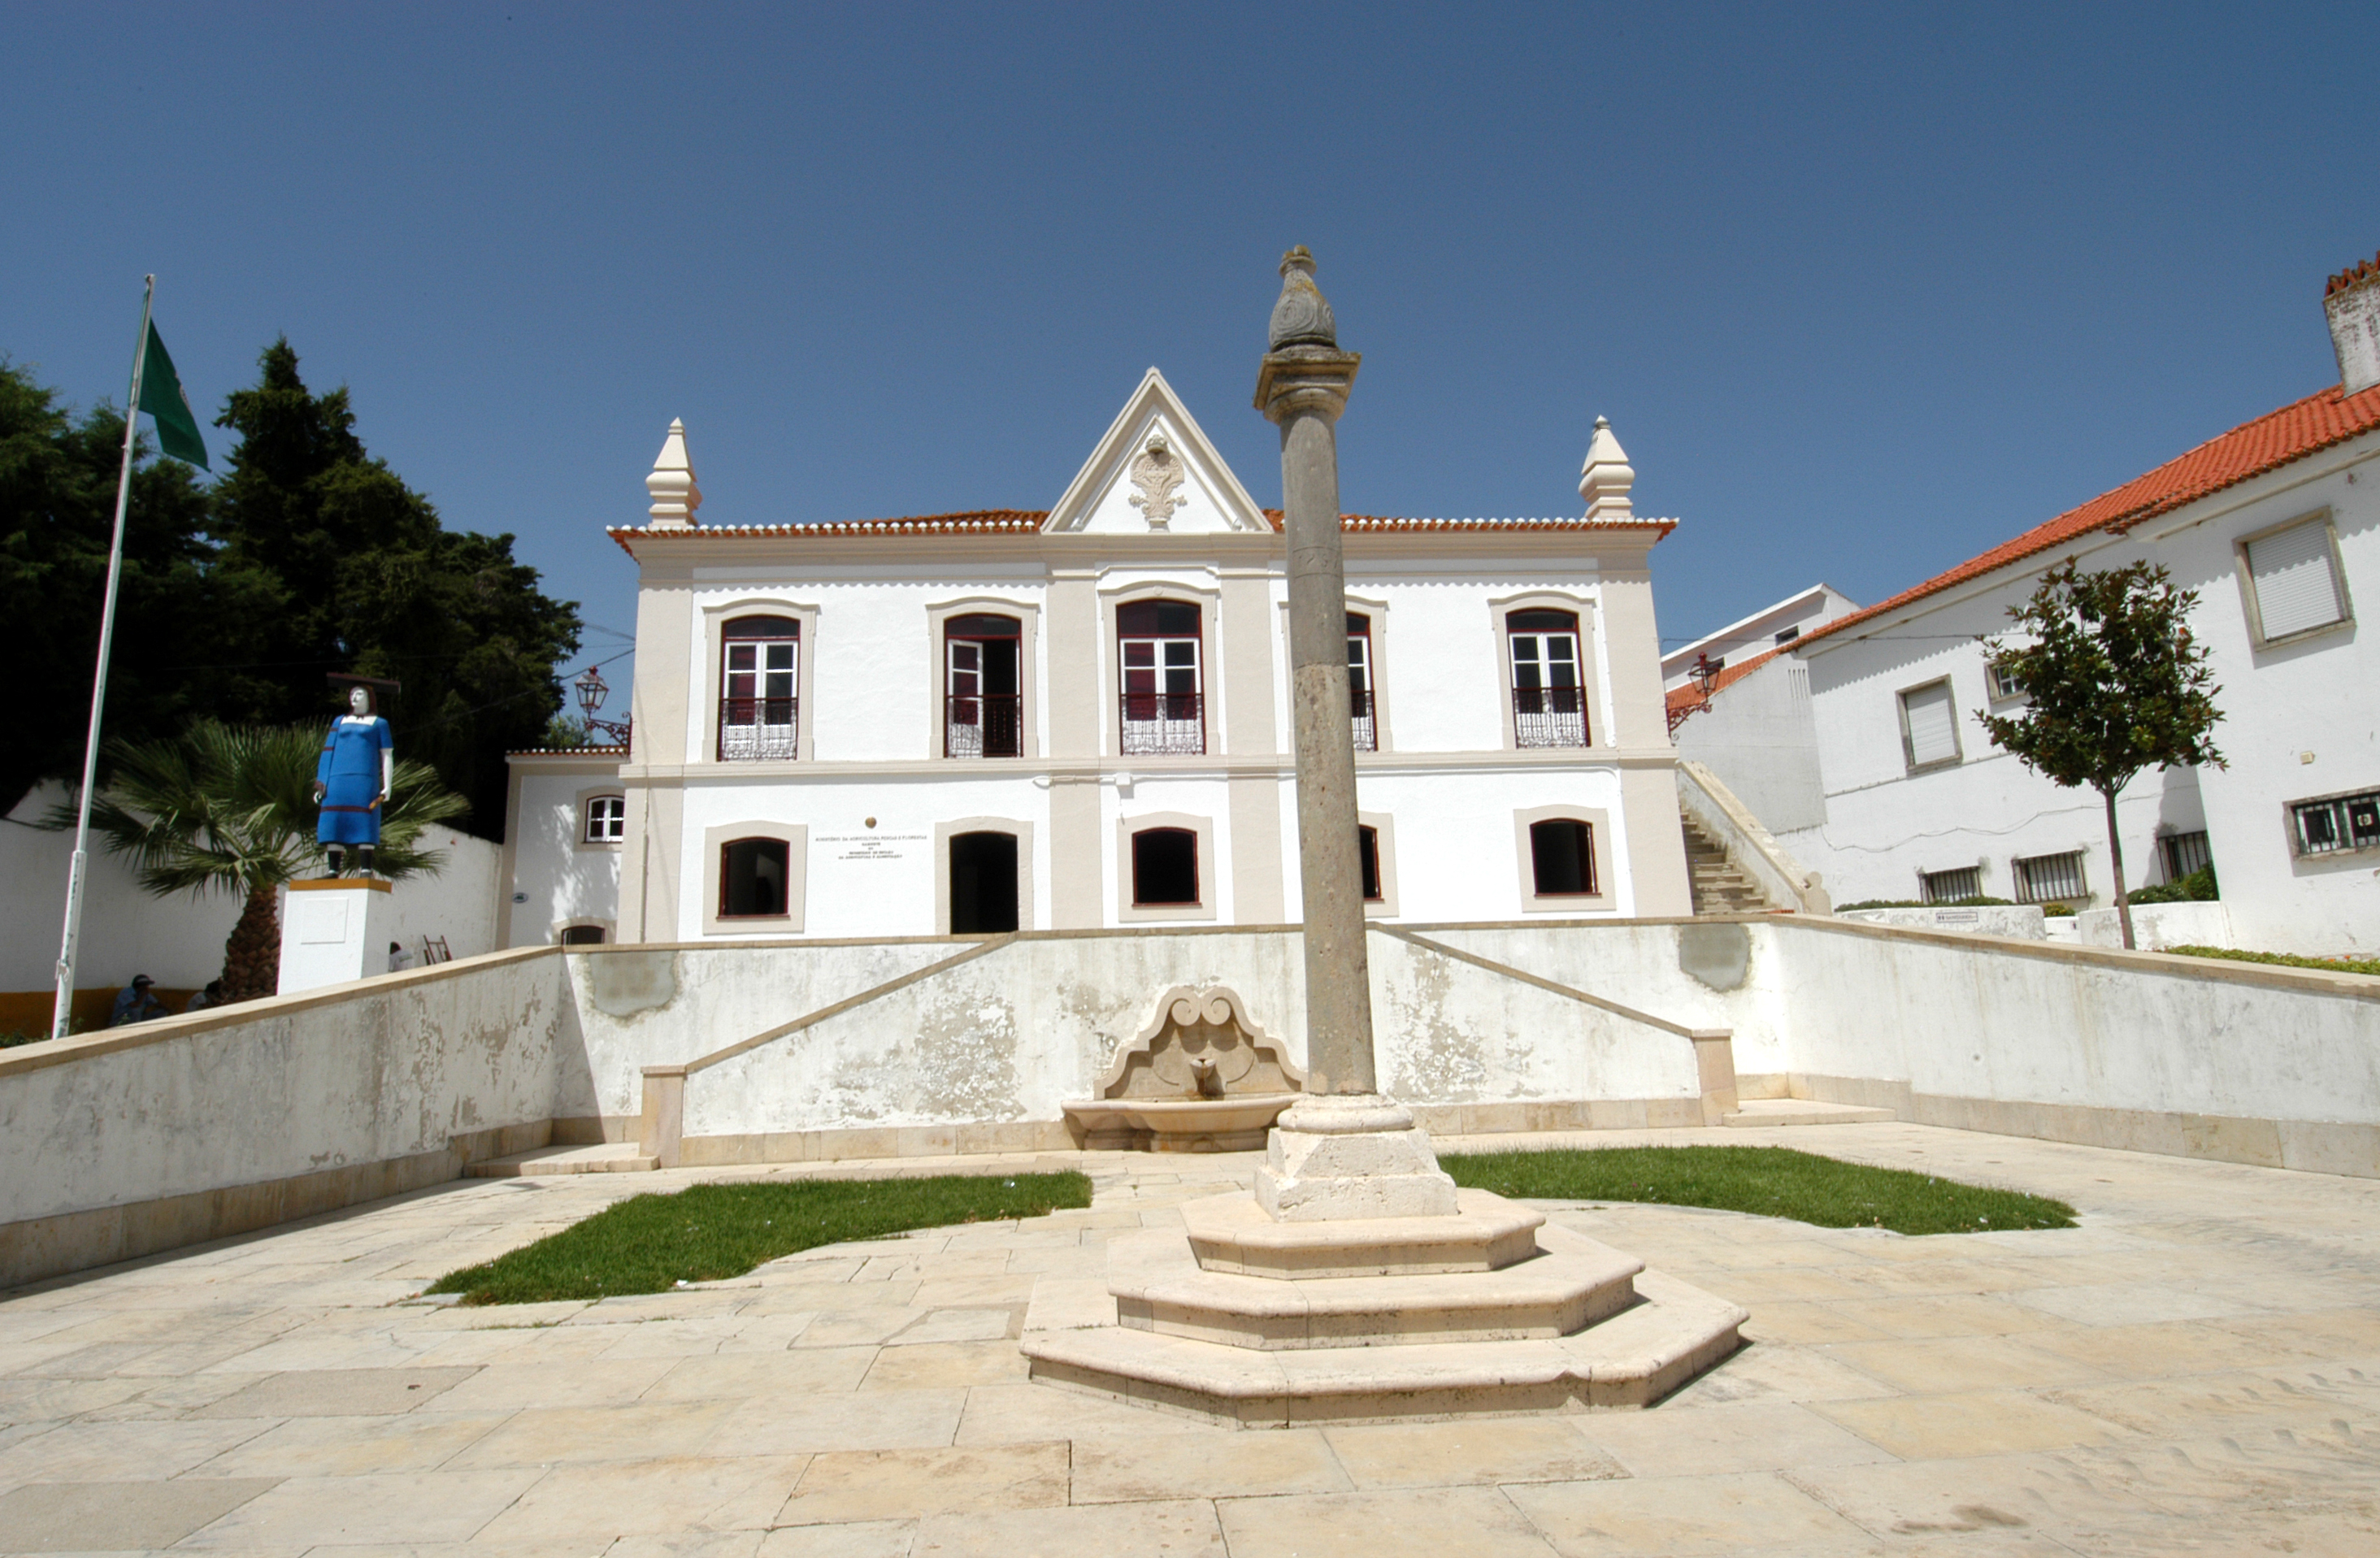 Palácio do Pelourinho